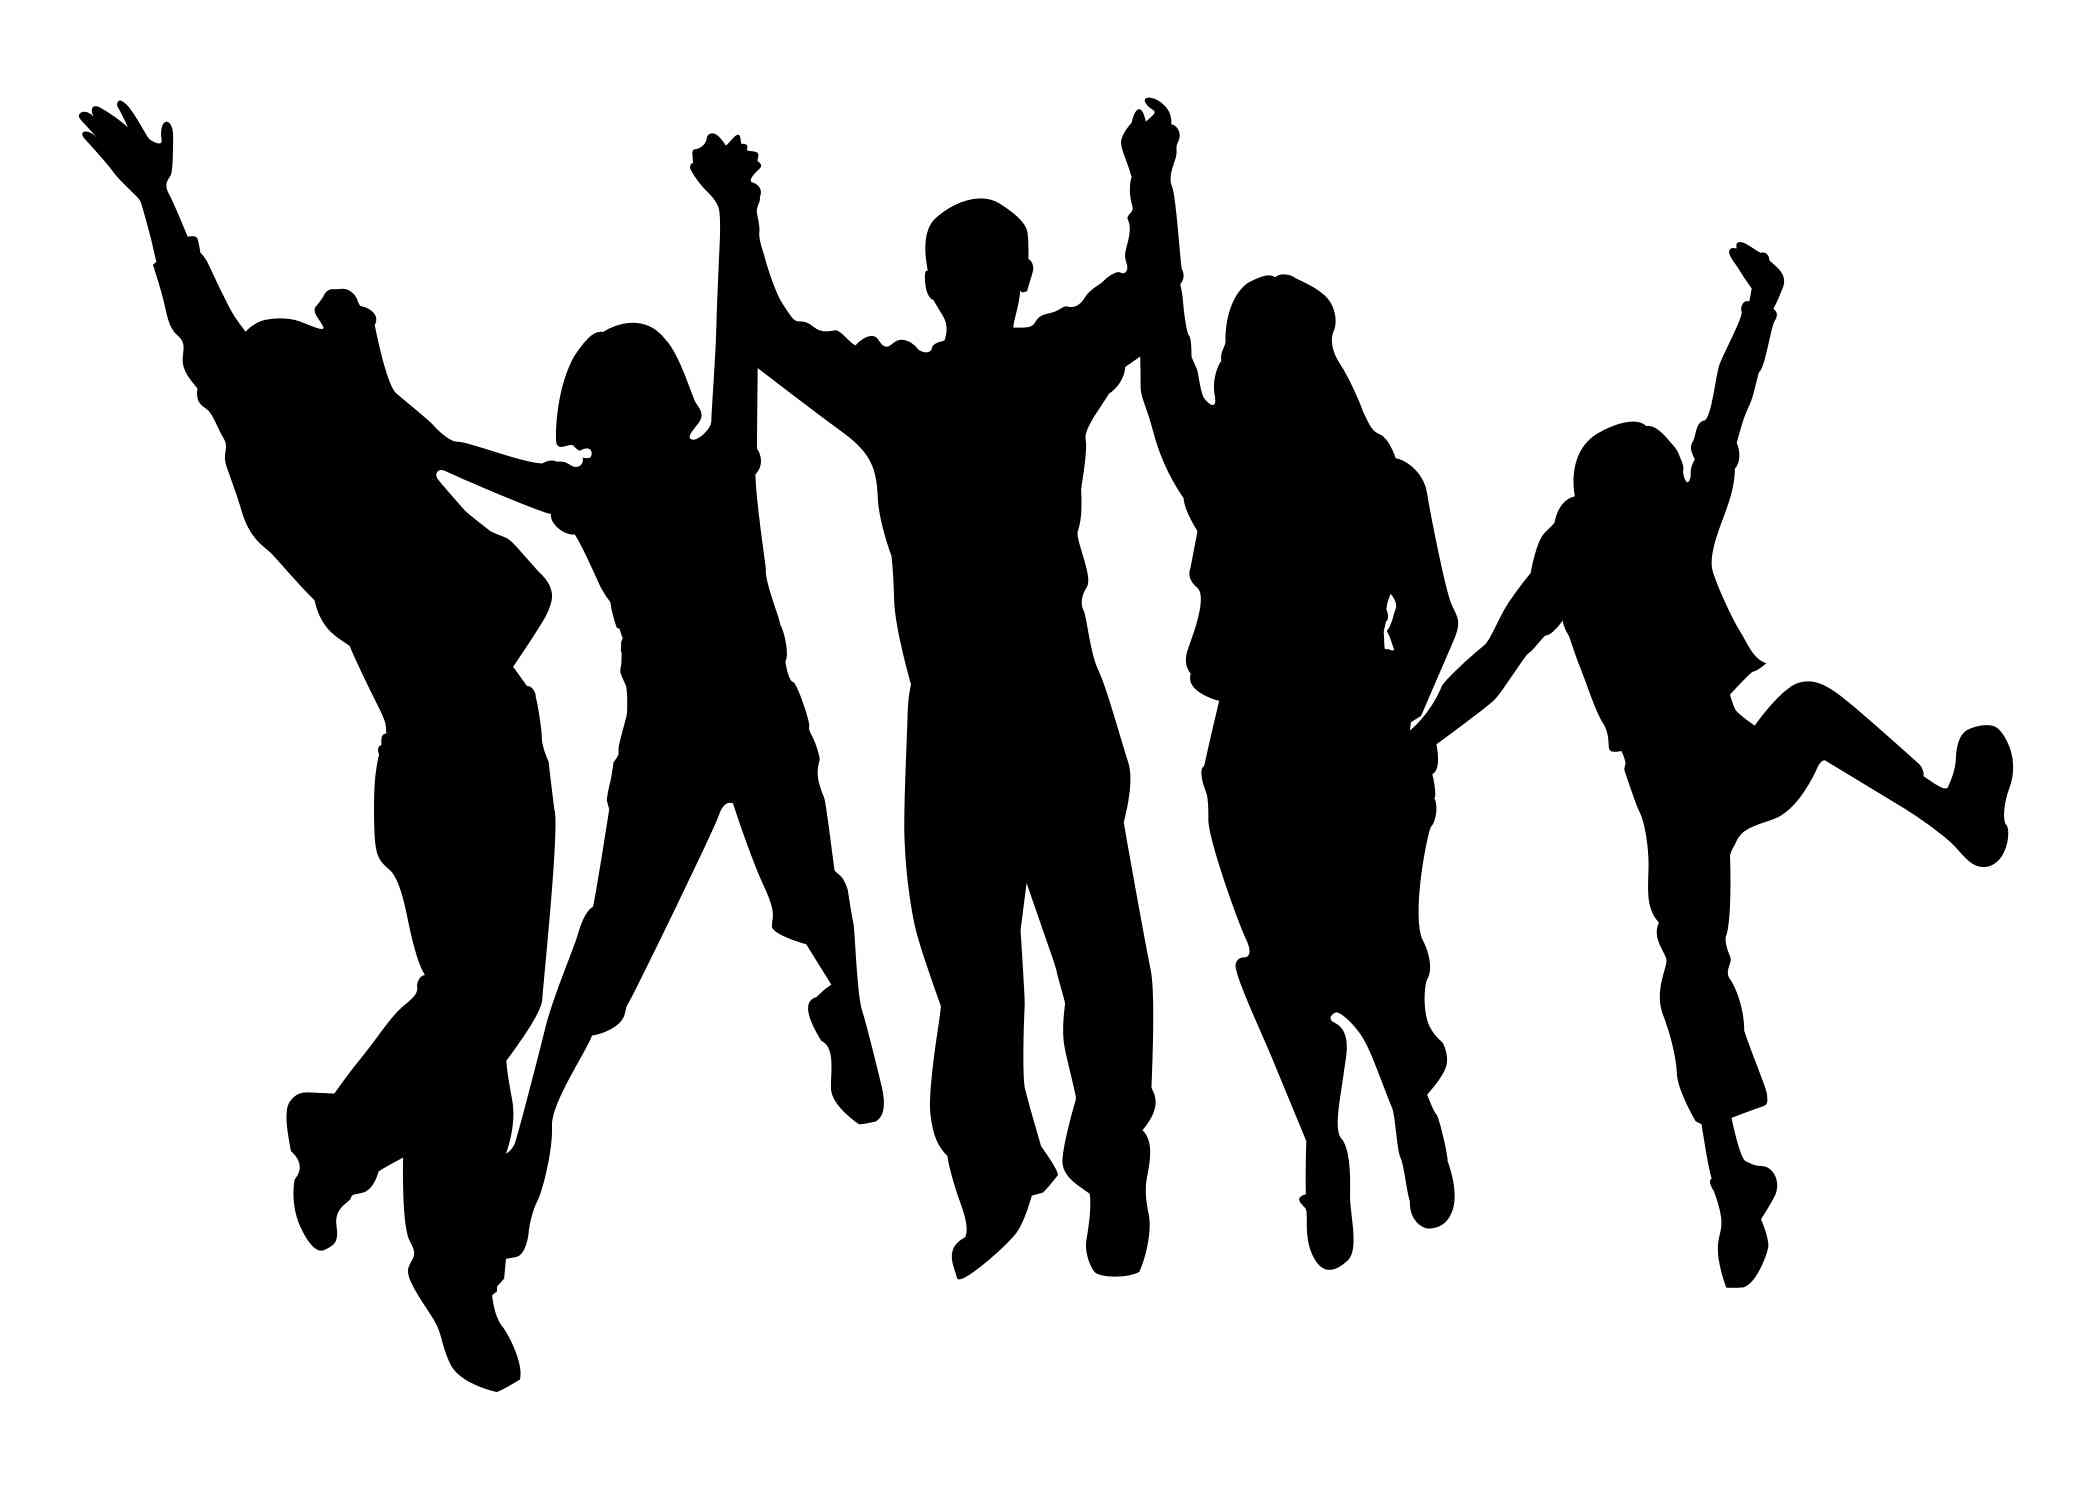 Black And White Png People - Free Party People Cliparts, Download Free Clip Art, Free Clip Art ...